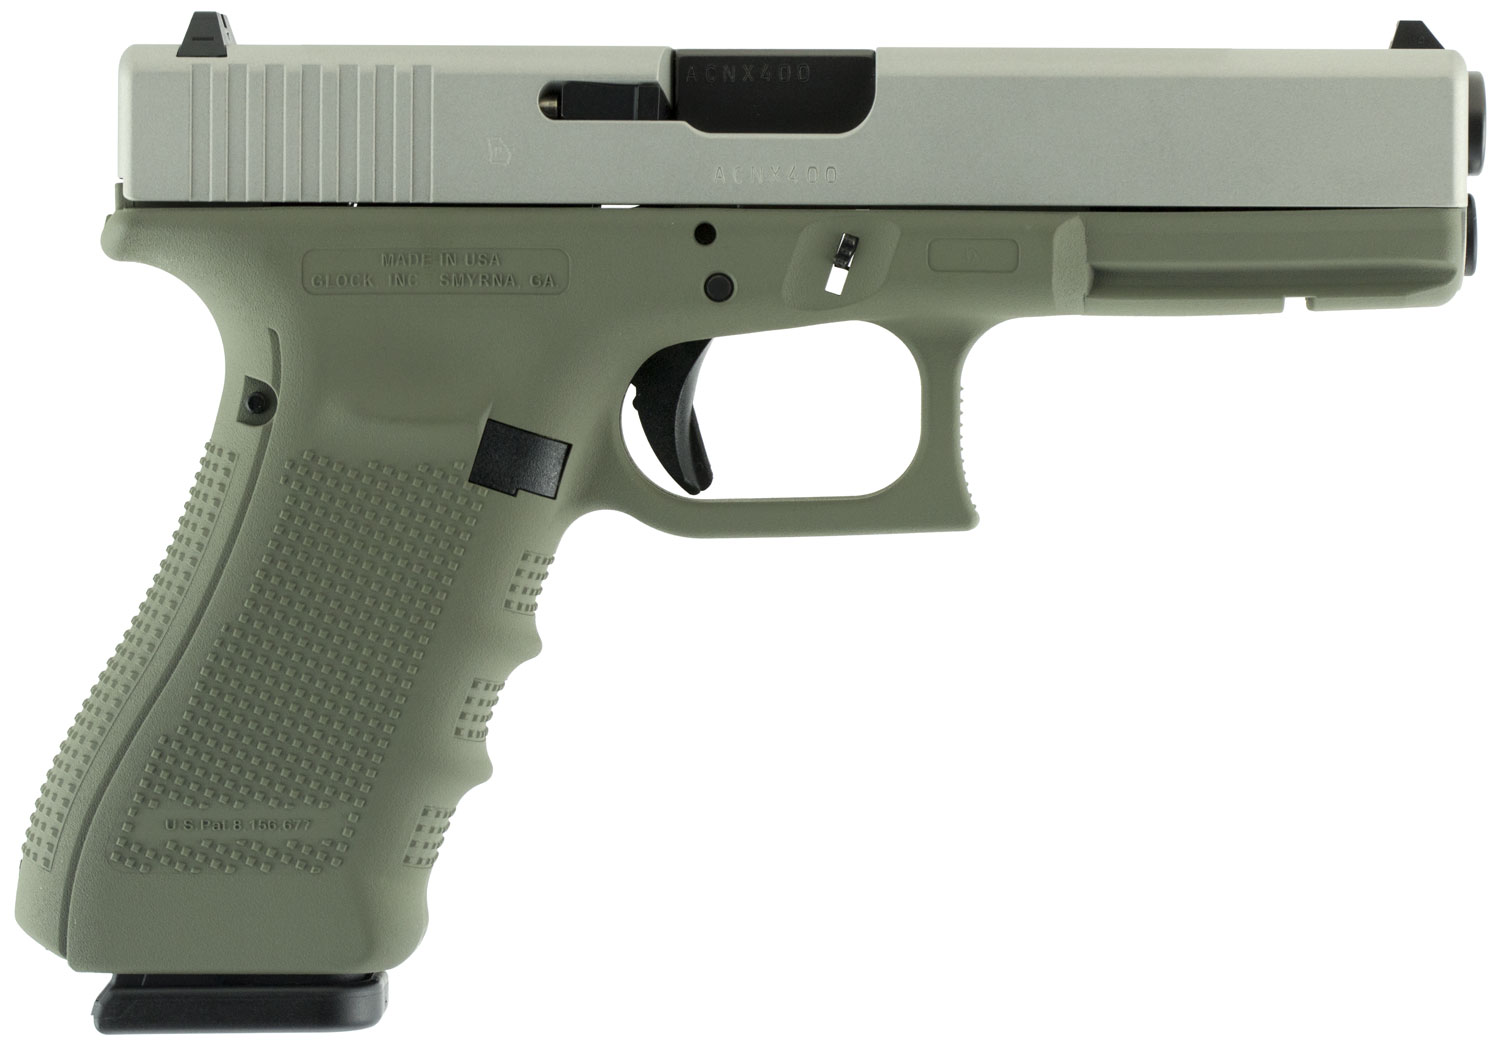 Glock UG1750204 G17 Gen 4 Double 9mm Luger 4.48